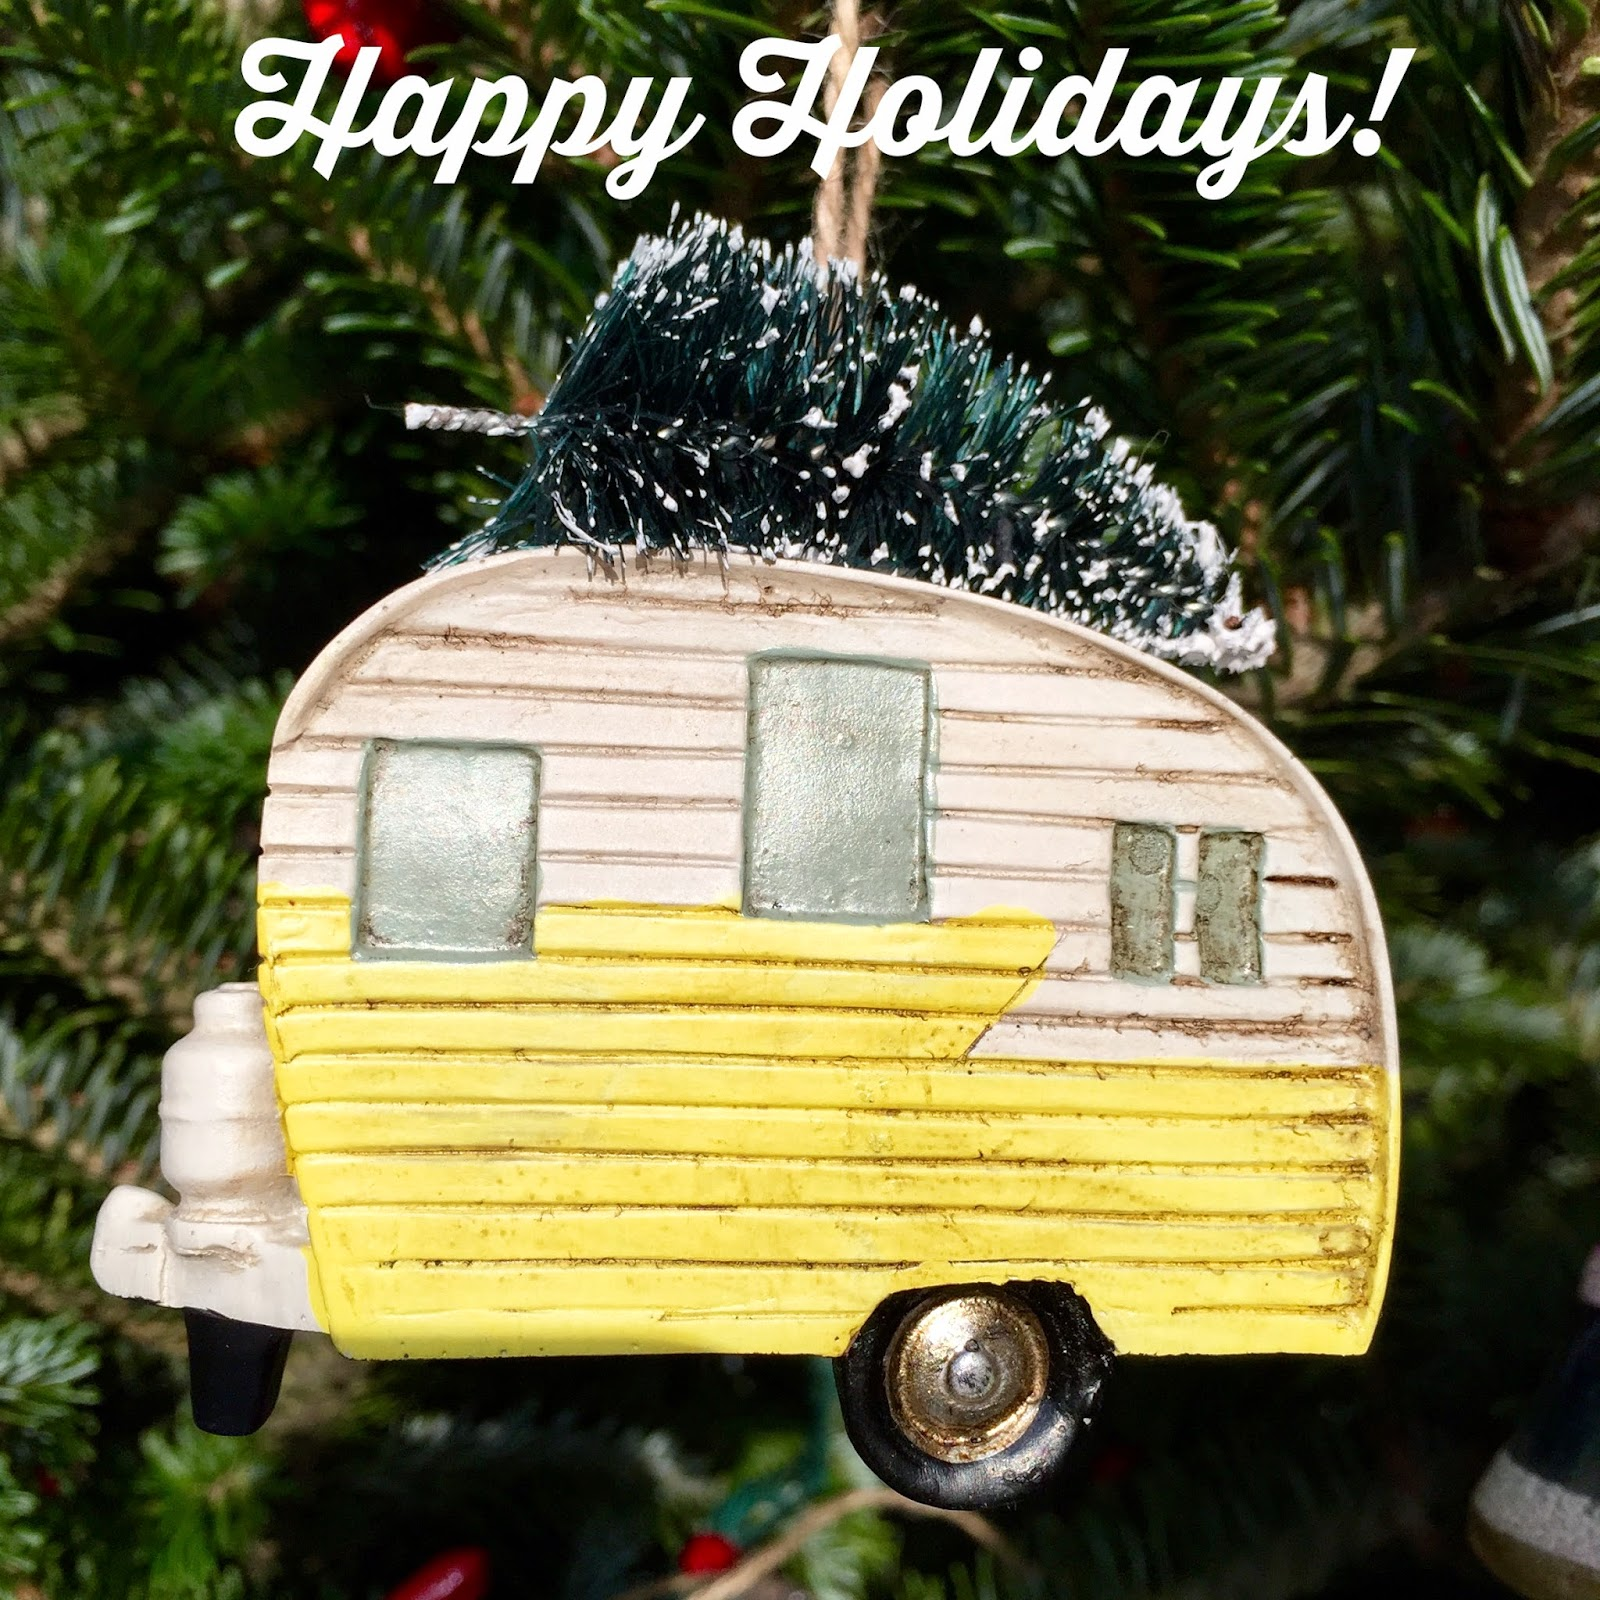 Happy Holidays and Trailer Love